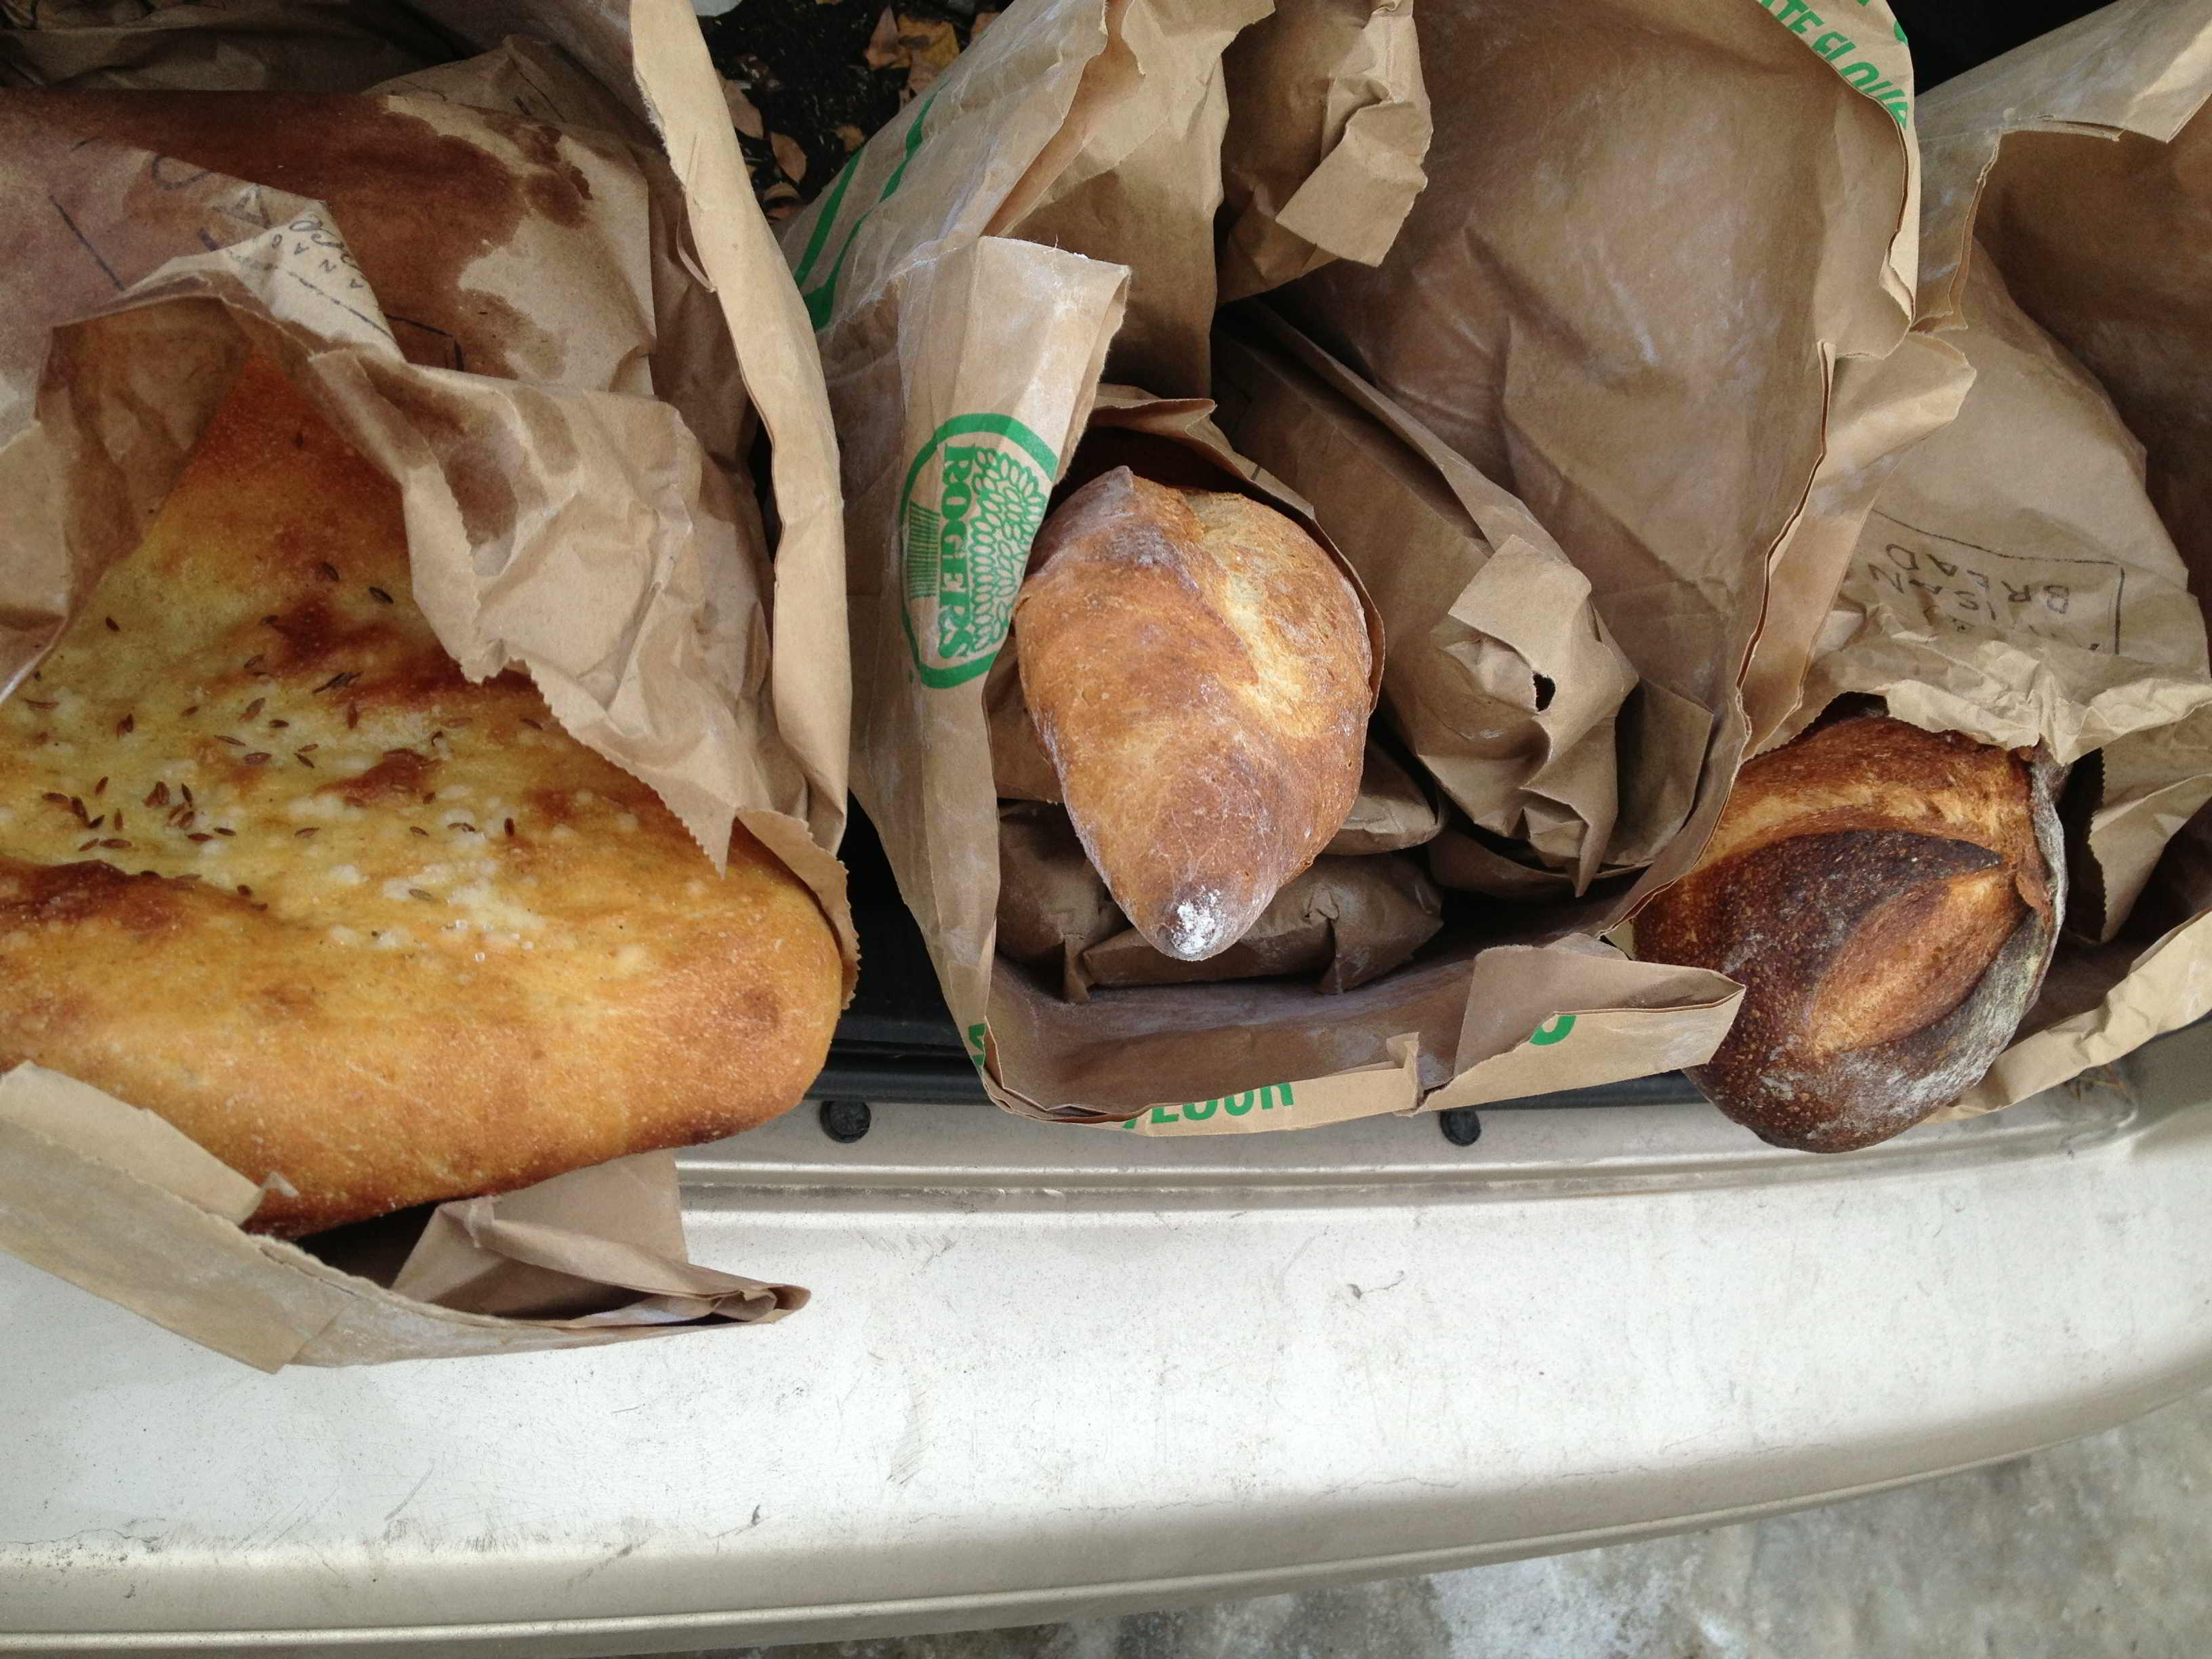 Artisan breads from Okanagan Grocery.  Treat yourself to a loaf of their chocolate bread!!